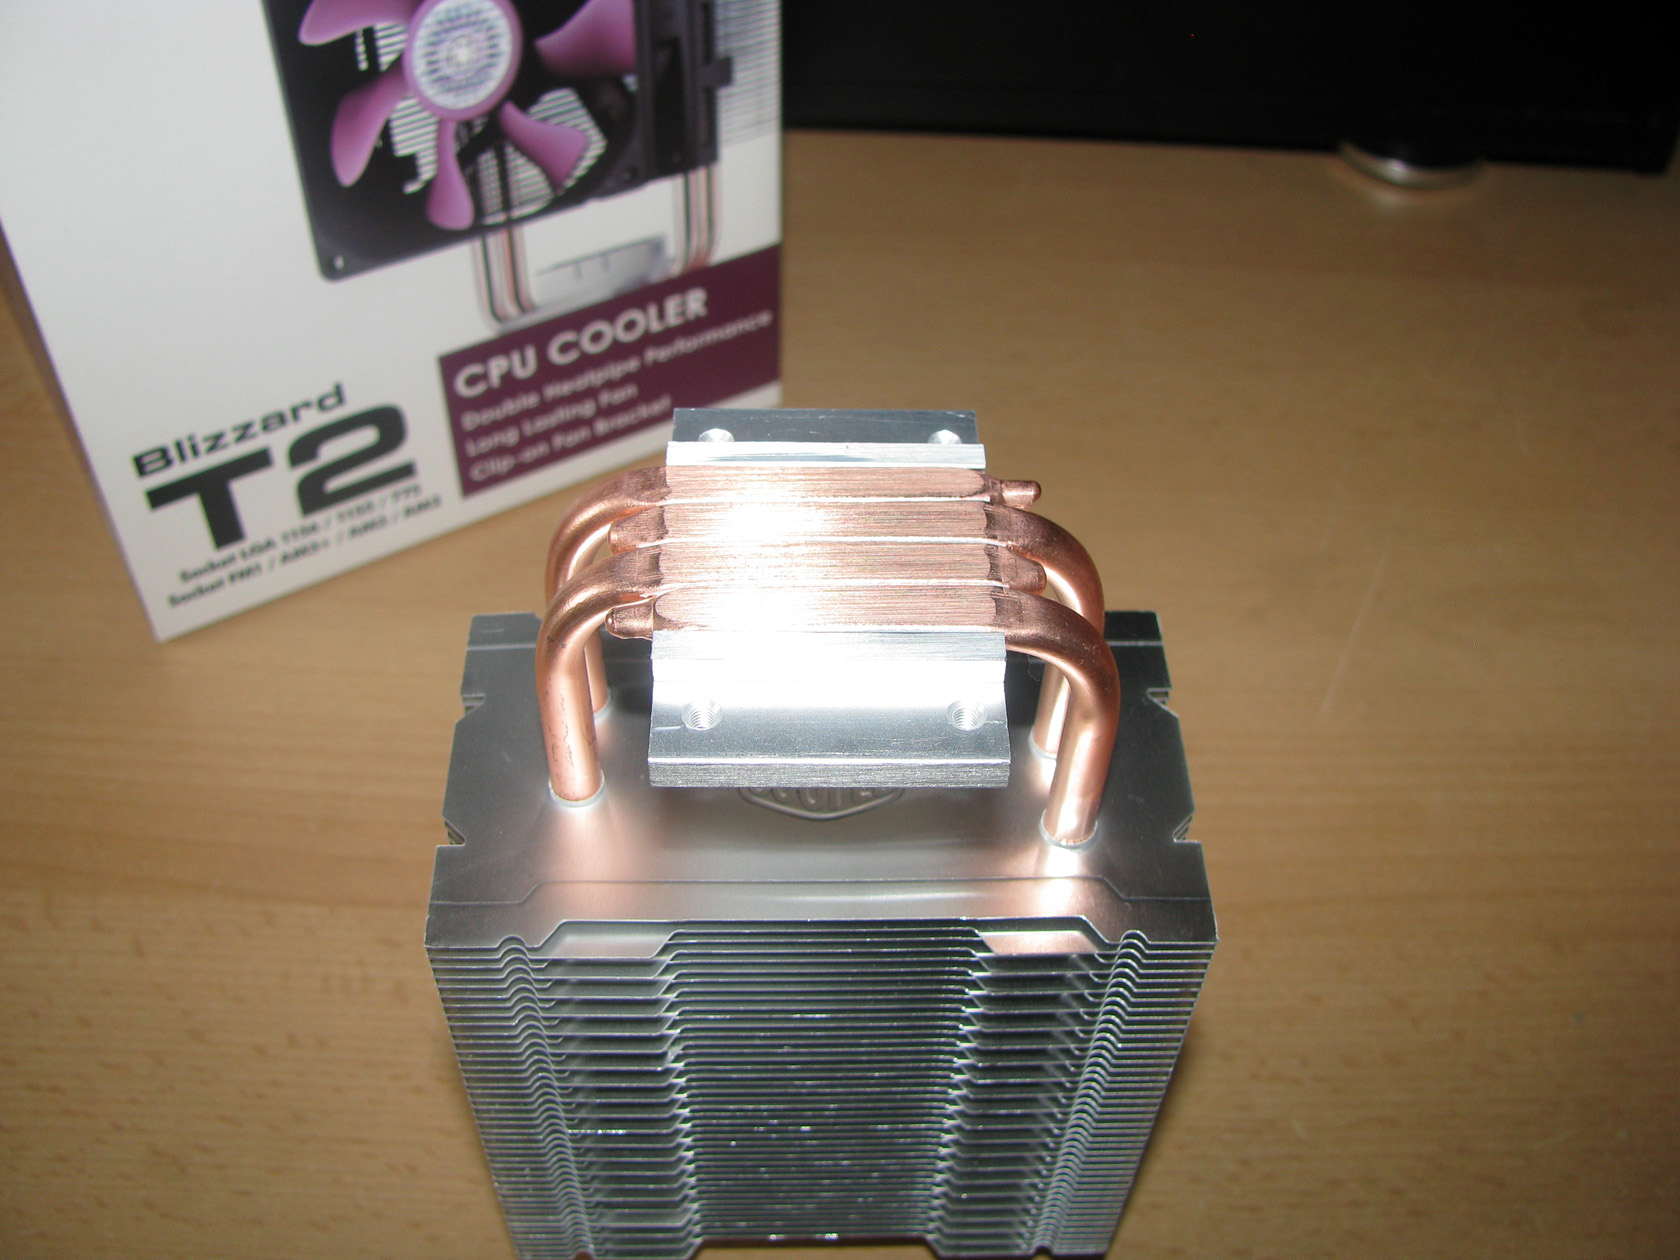 cooler master blizzard t test and review the whole radiator the cdc and dual loop technologies is cooled by a well known fan used in few other models like cooler master tx3 and cooler master